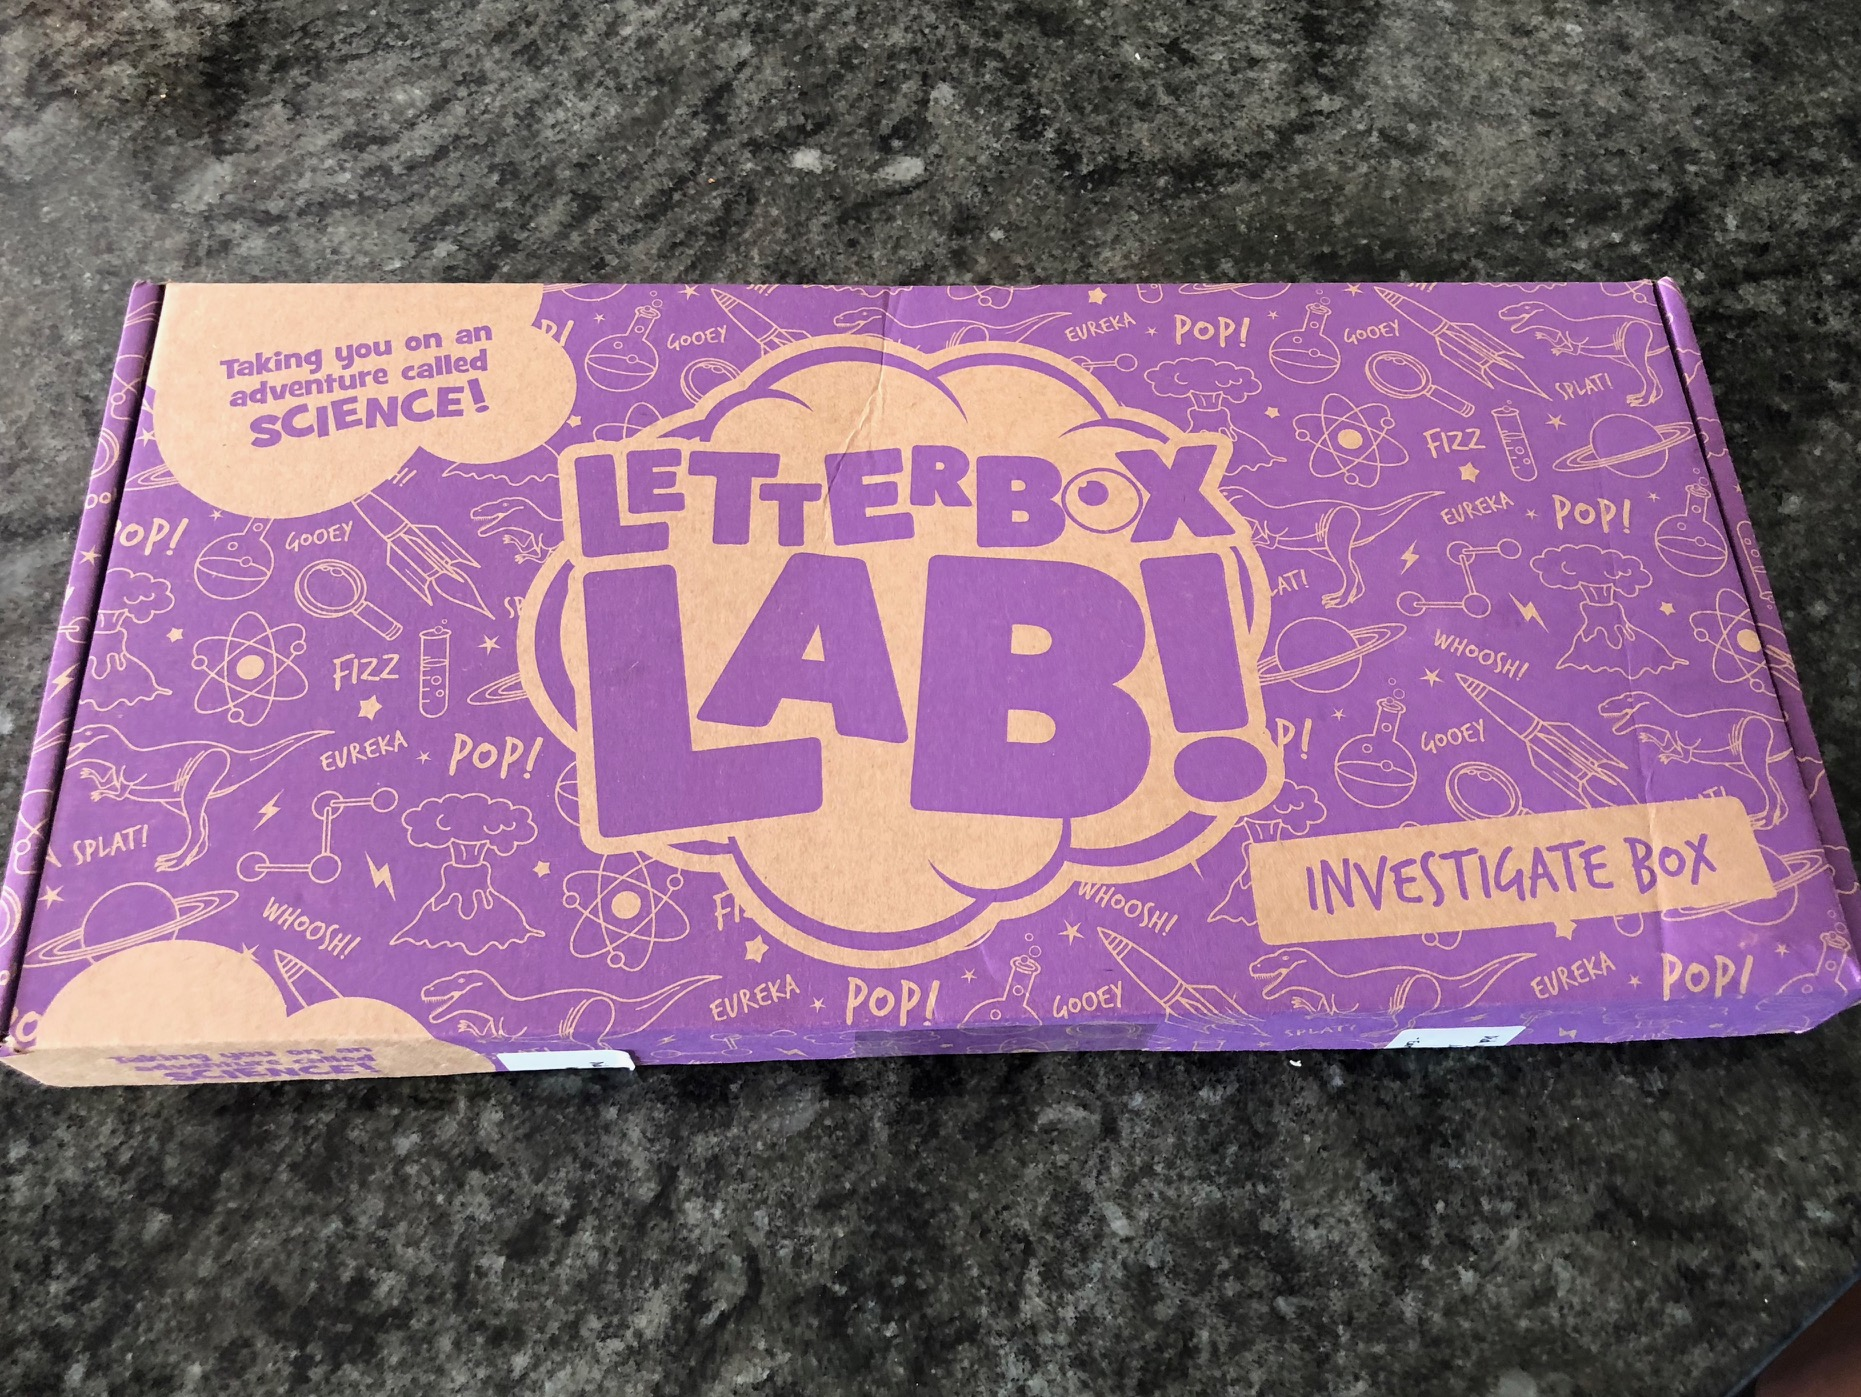 Letterbox Lab! The Investigate Box   Staff Review